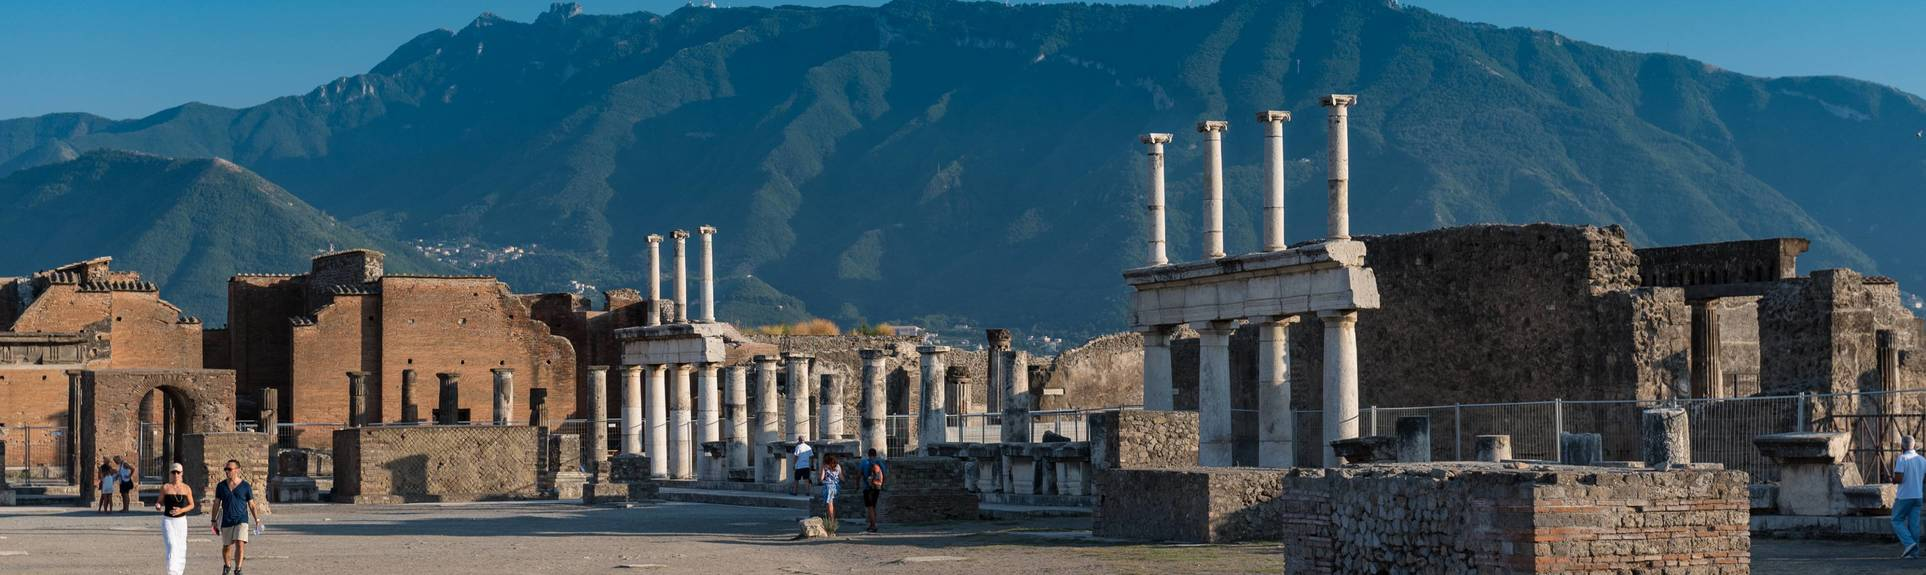 Looking at ruins of Pompeii with Mt. Vesuvius as a backdrop